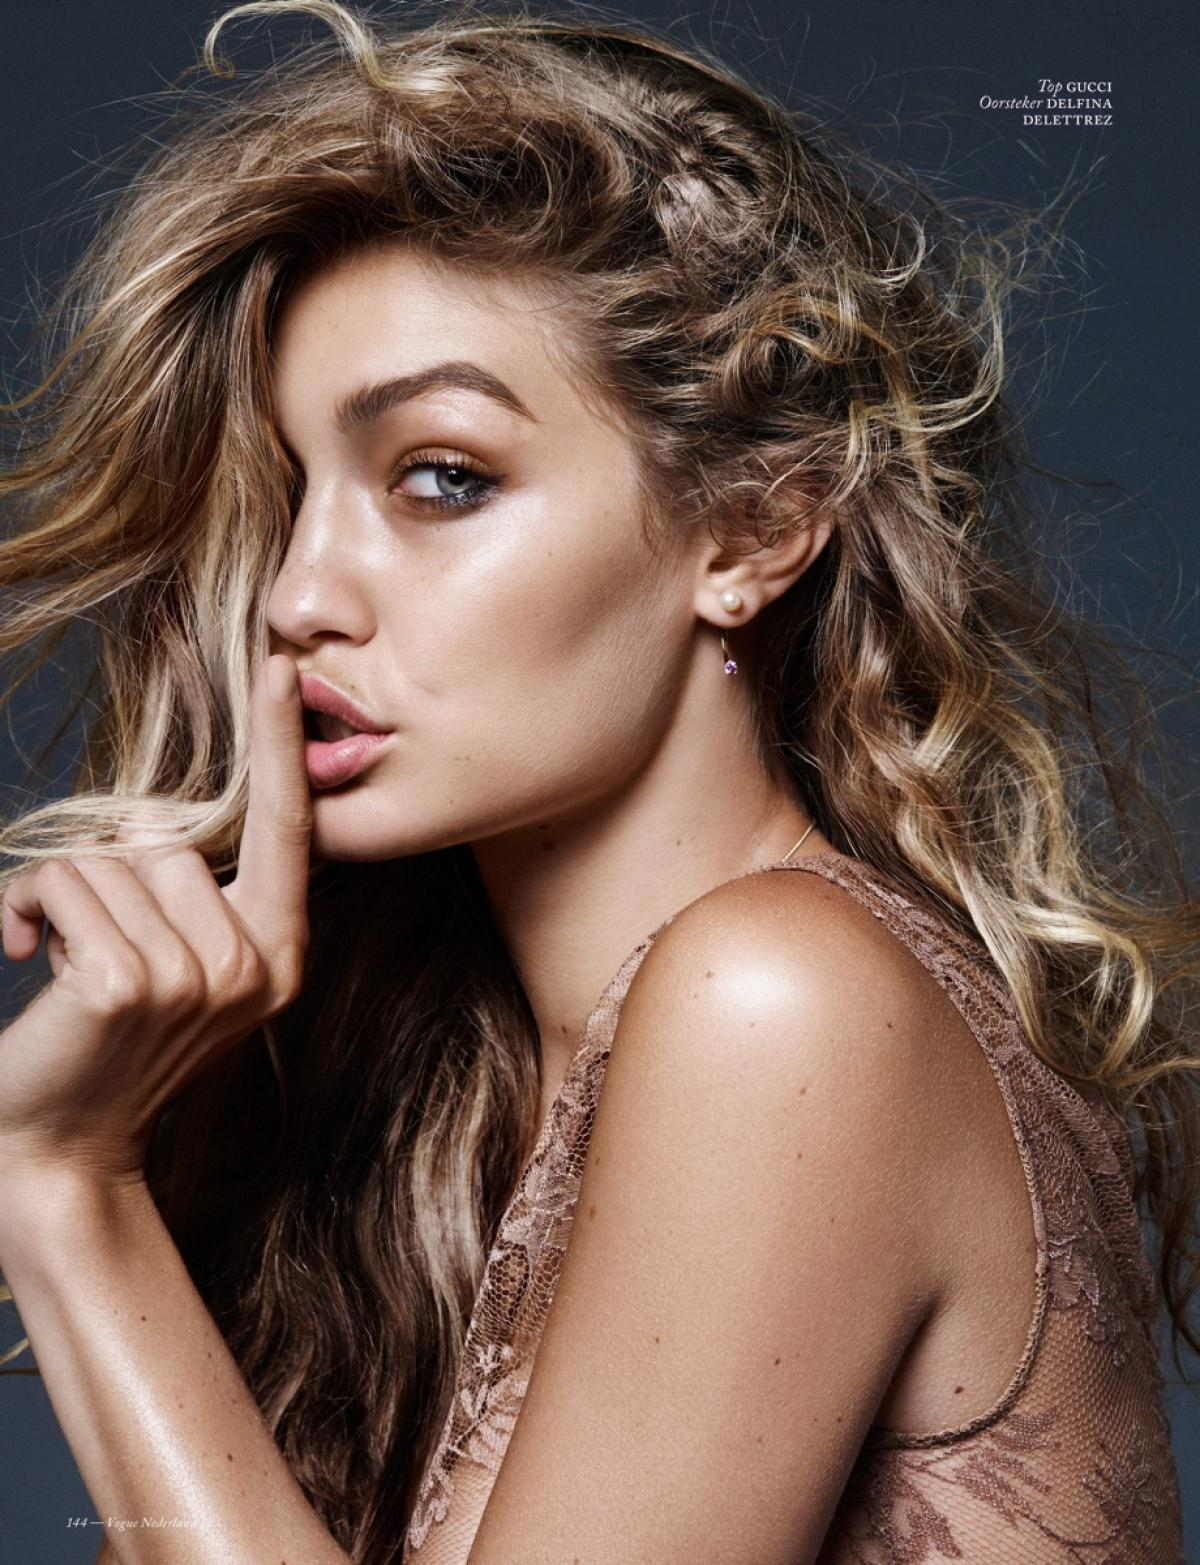 Beautiful Fashion Model Gigi Hadid Modeling For Vogue Netherlands Fashion Editorials Modeling As One Of The Highest Paid Models In The World. The World's Highest Paid Models. The Top Earning Models In The World.